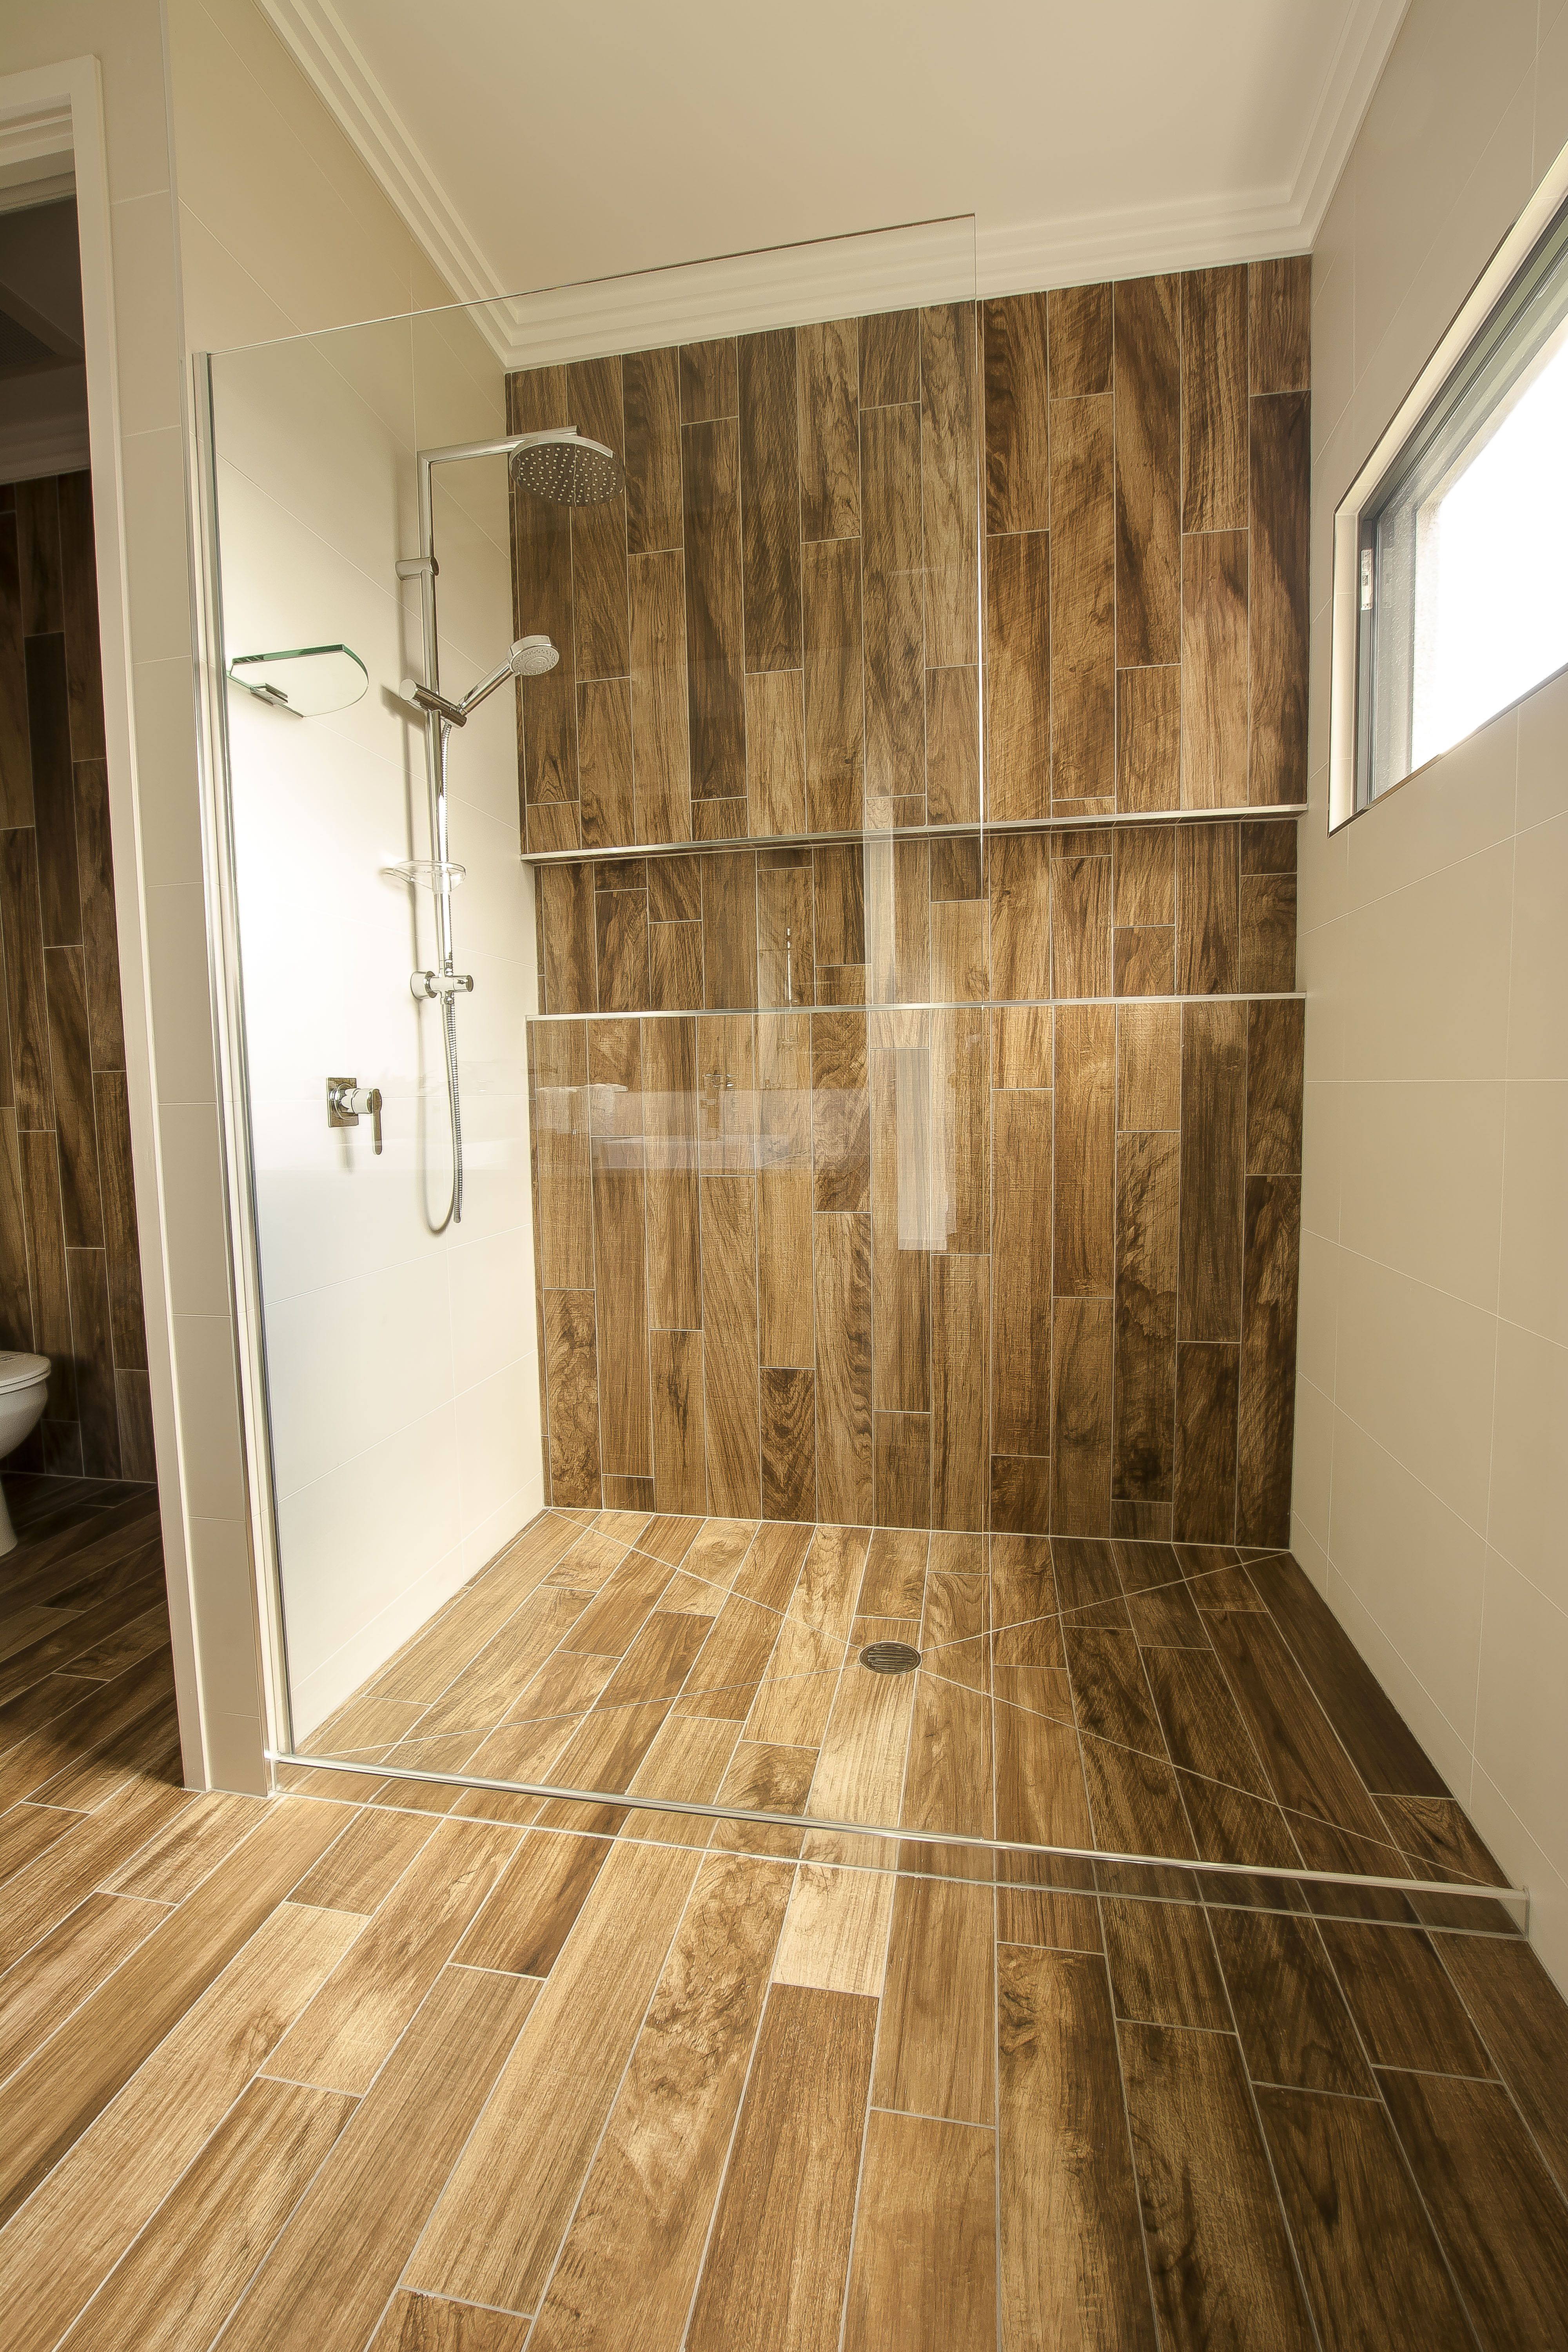 Spacious Ensuite Shower With Wood Look Tiles By Mccarthy Homes Bathroom Design Home Builders Home